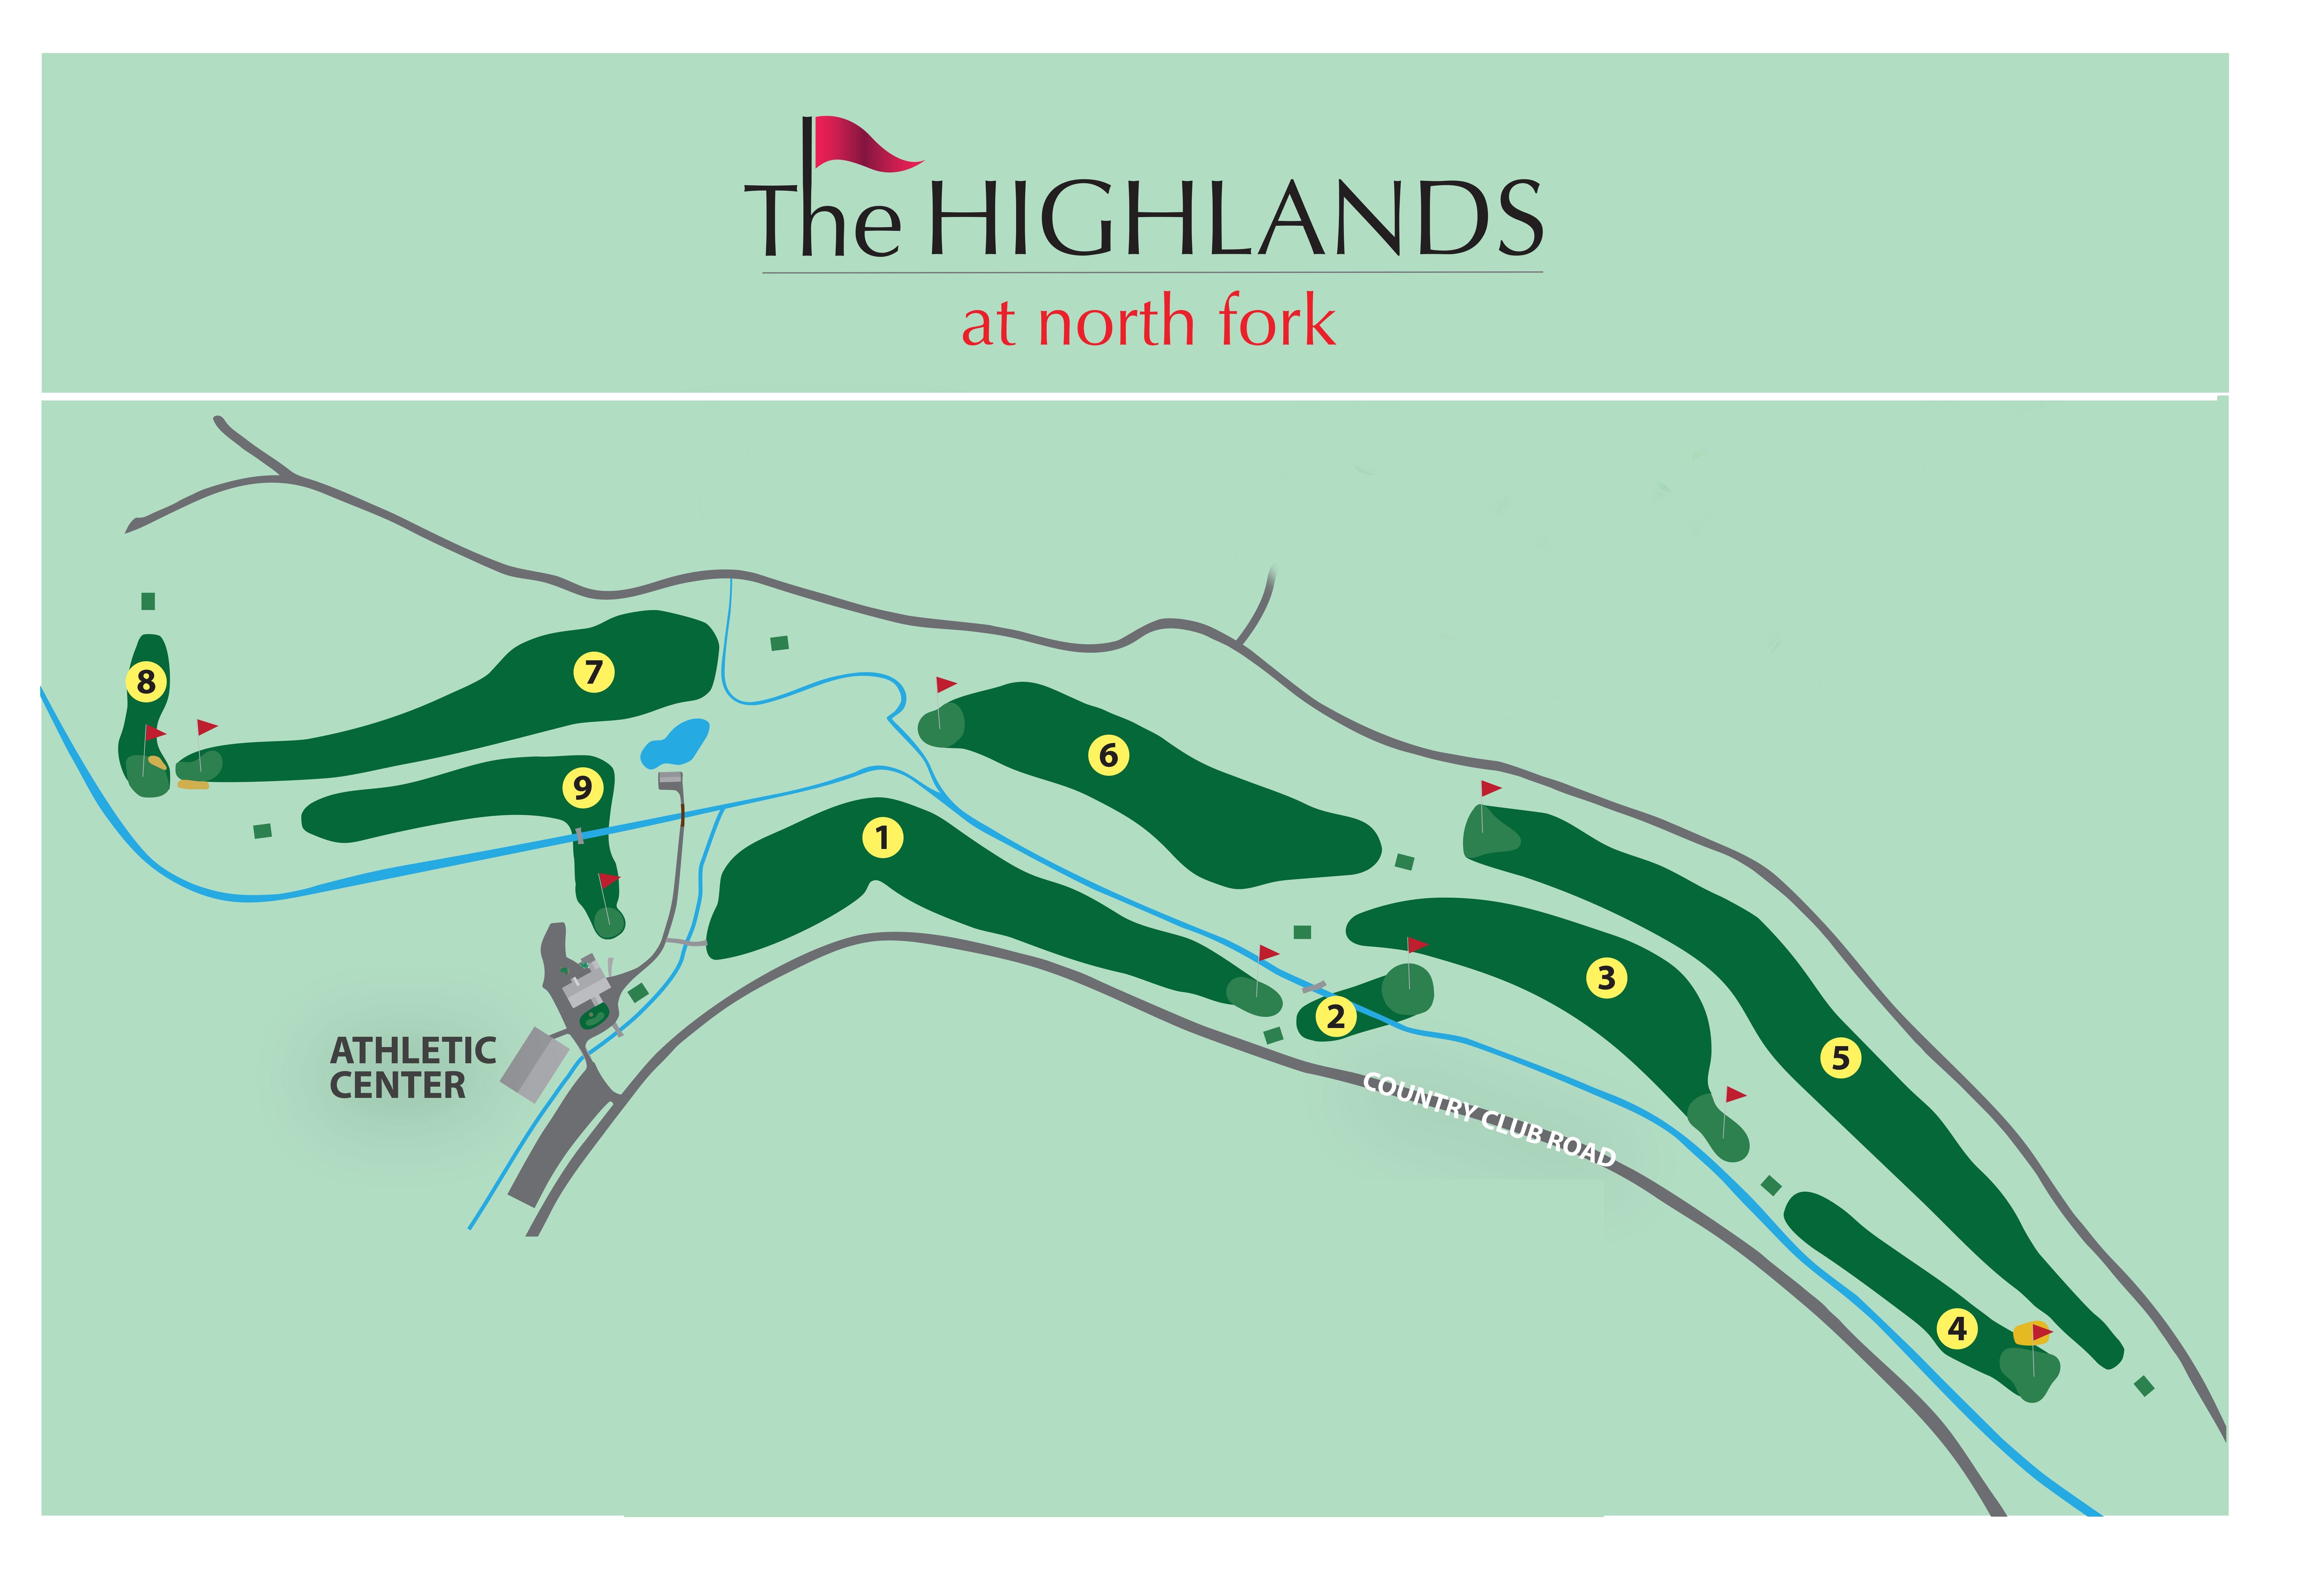 Map of The Highlands 9-hole golf course